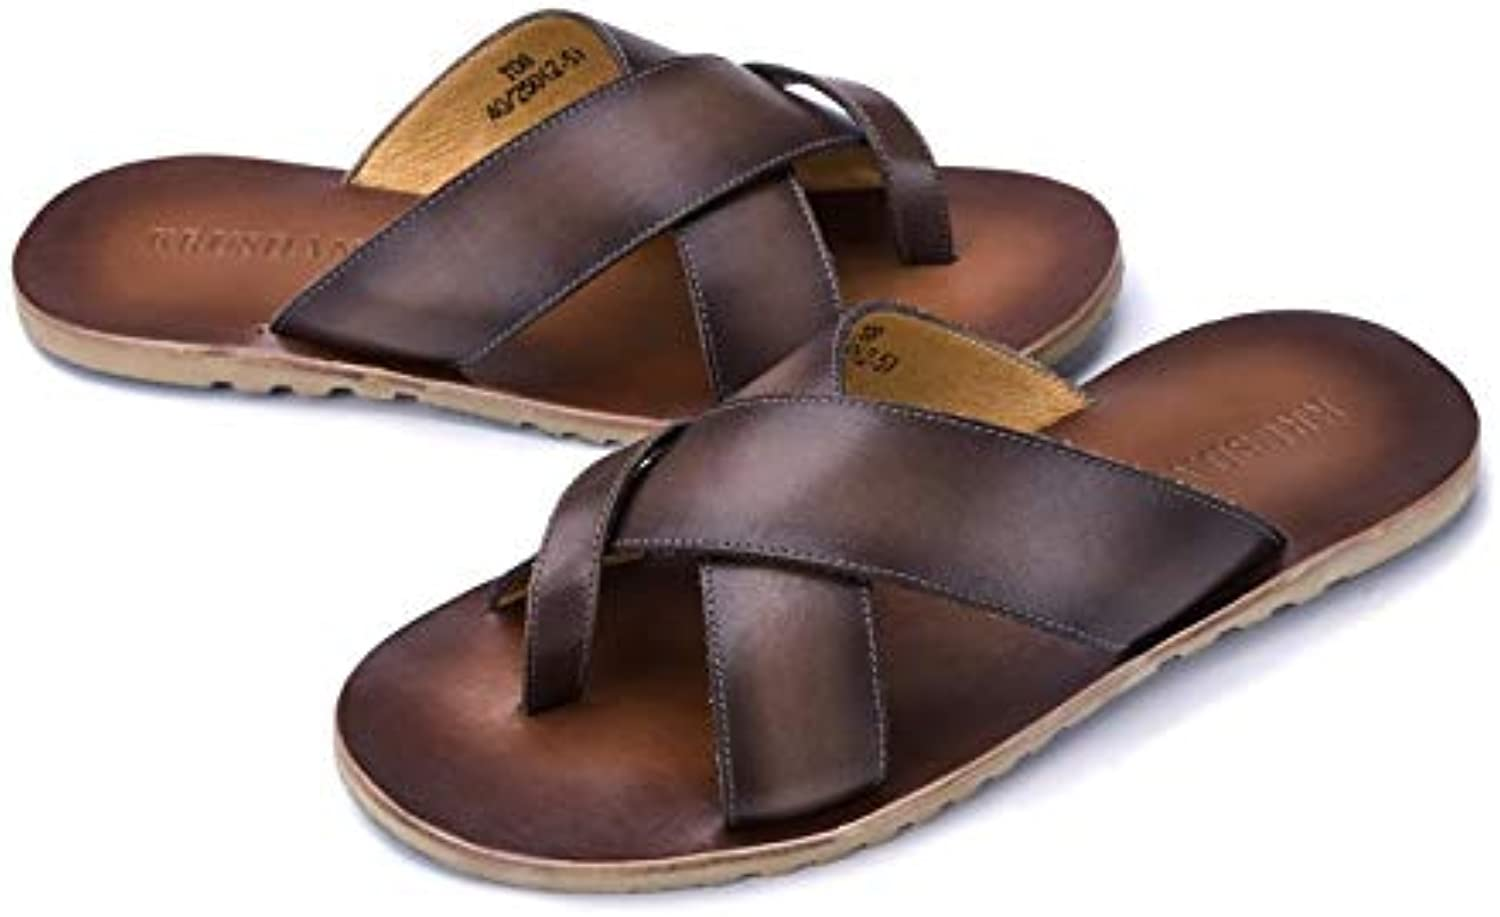 shoes Men Handmade Summer Men's Sandals Outdoor Non-Slip Leather Men's Beach shoes Slippers Leather Casual Sandals Handmade Leather shoes (color   Coffee, Size   7-US)